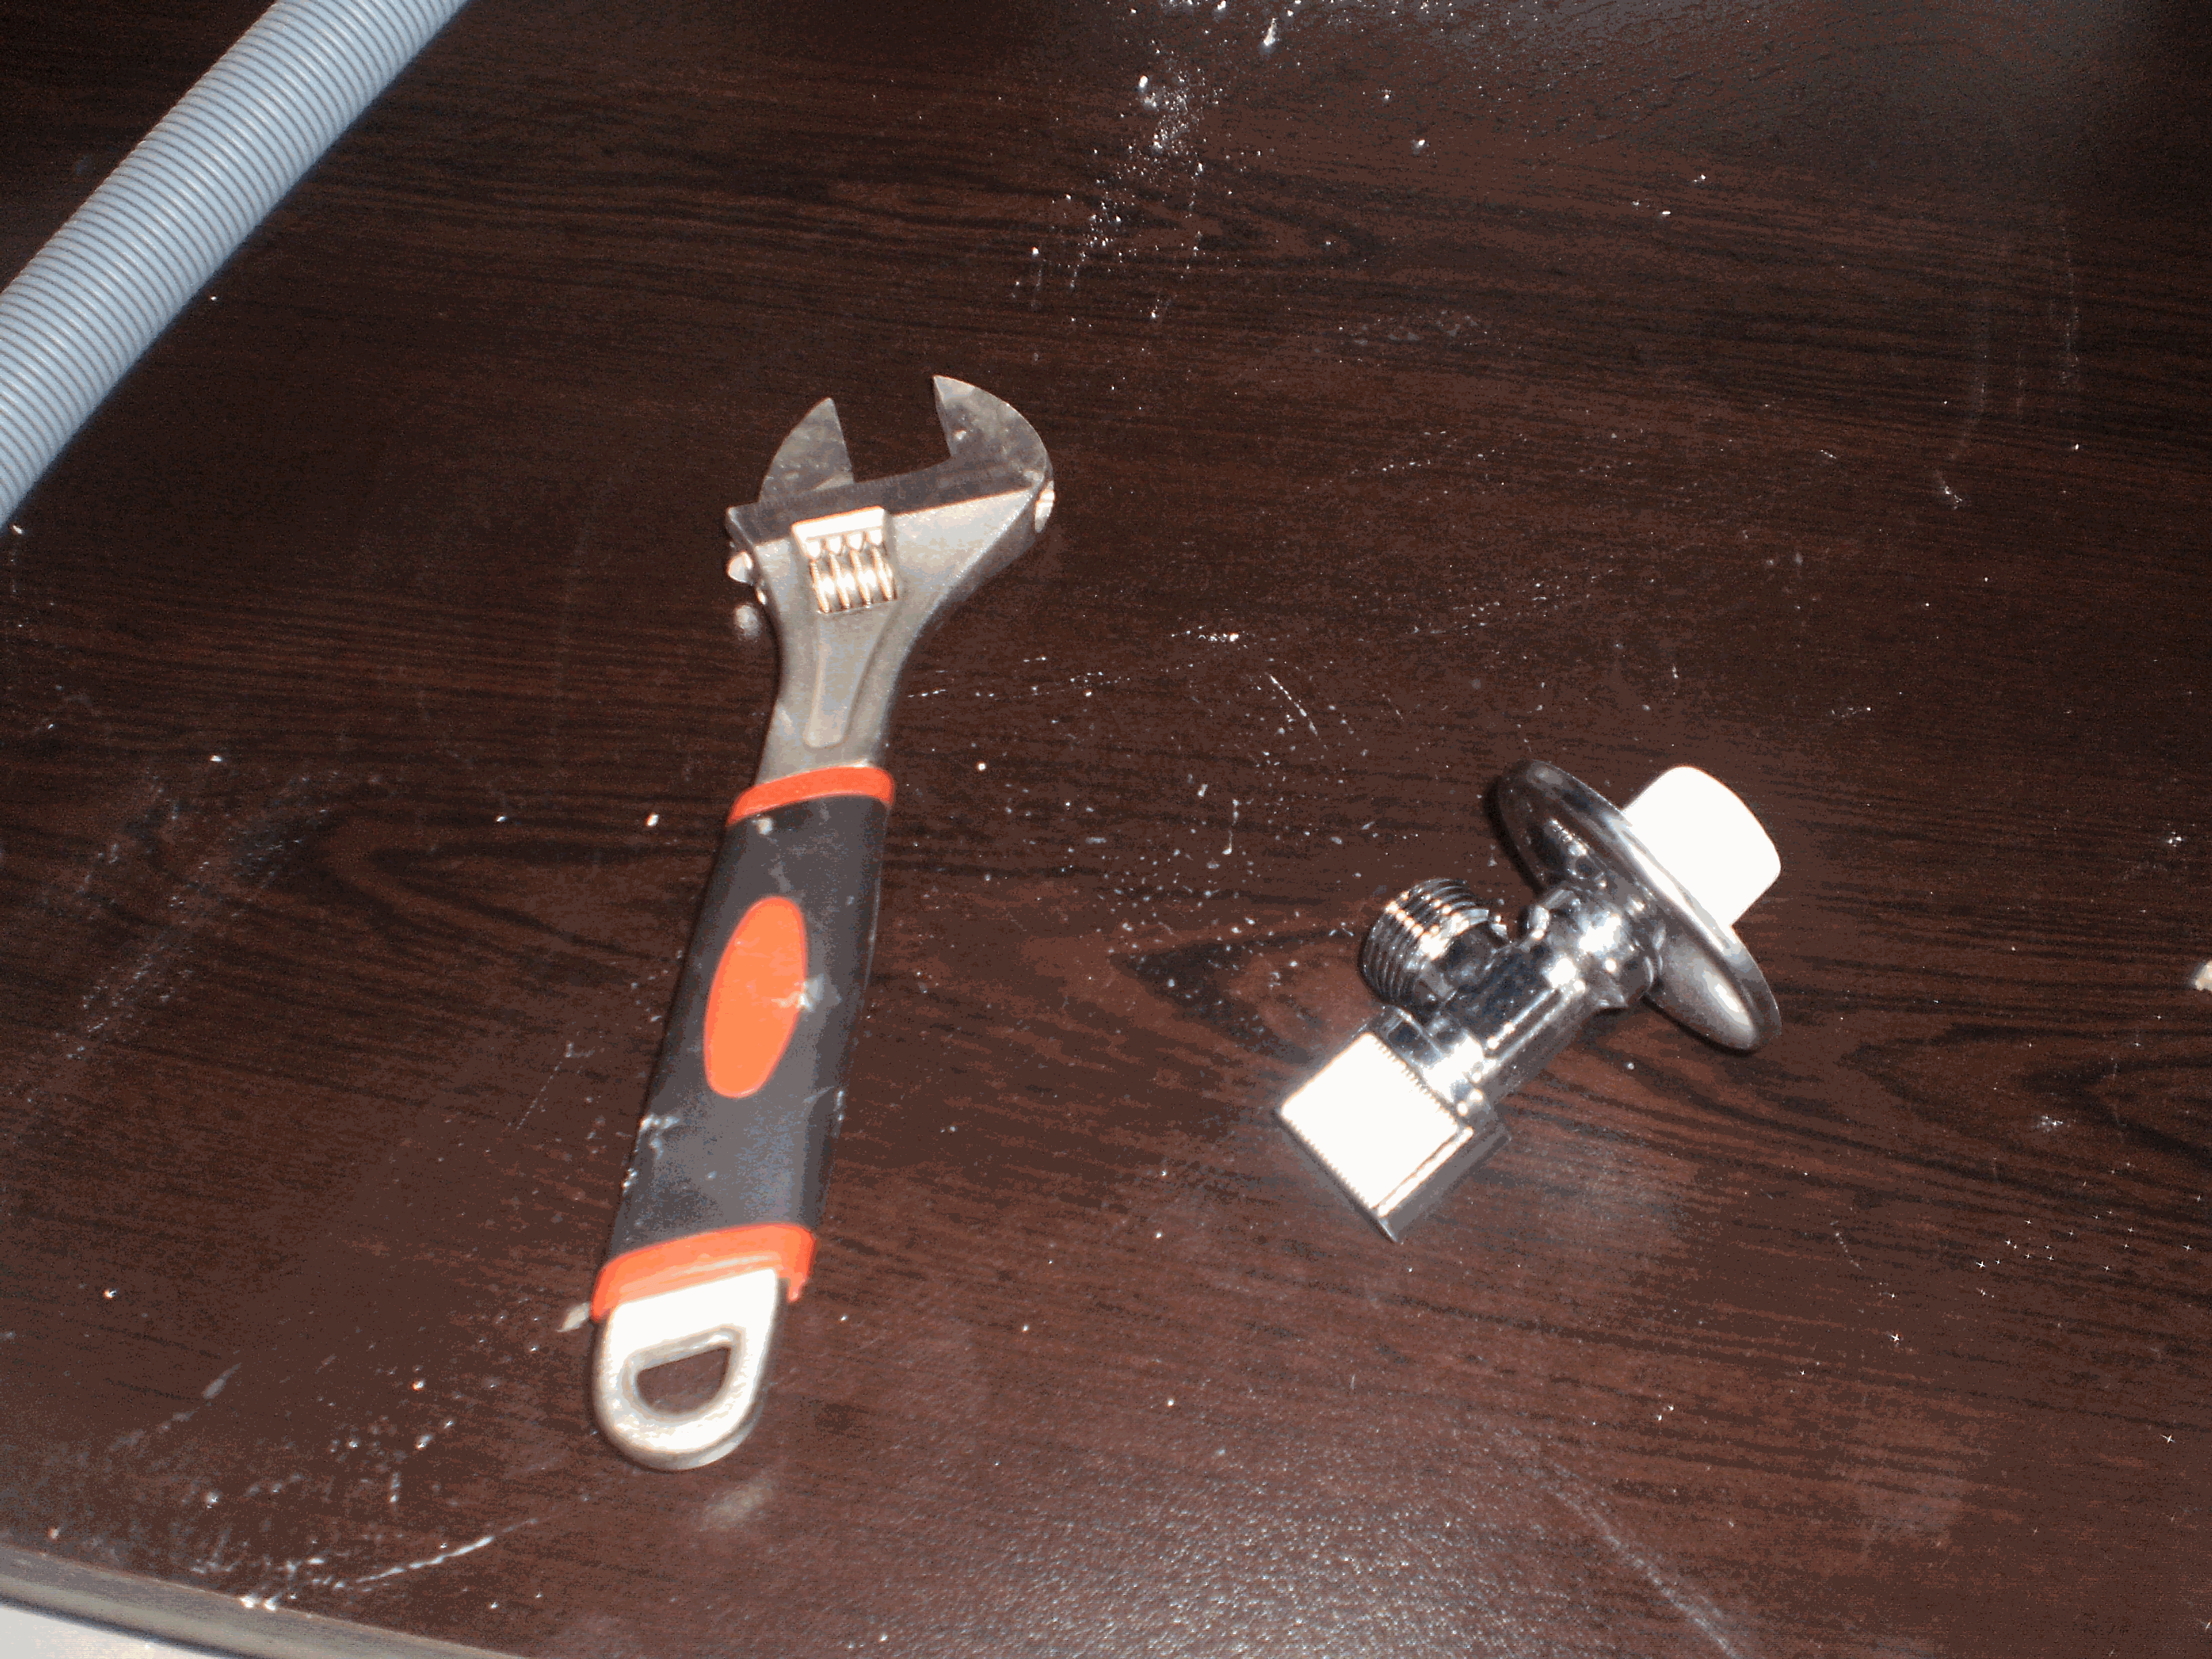 Plumbing tool for mounting a sink